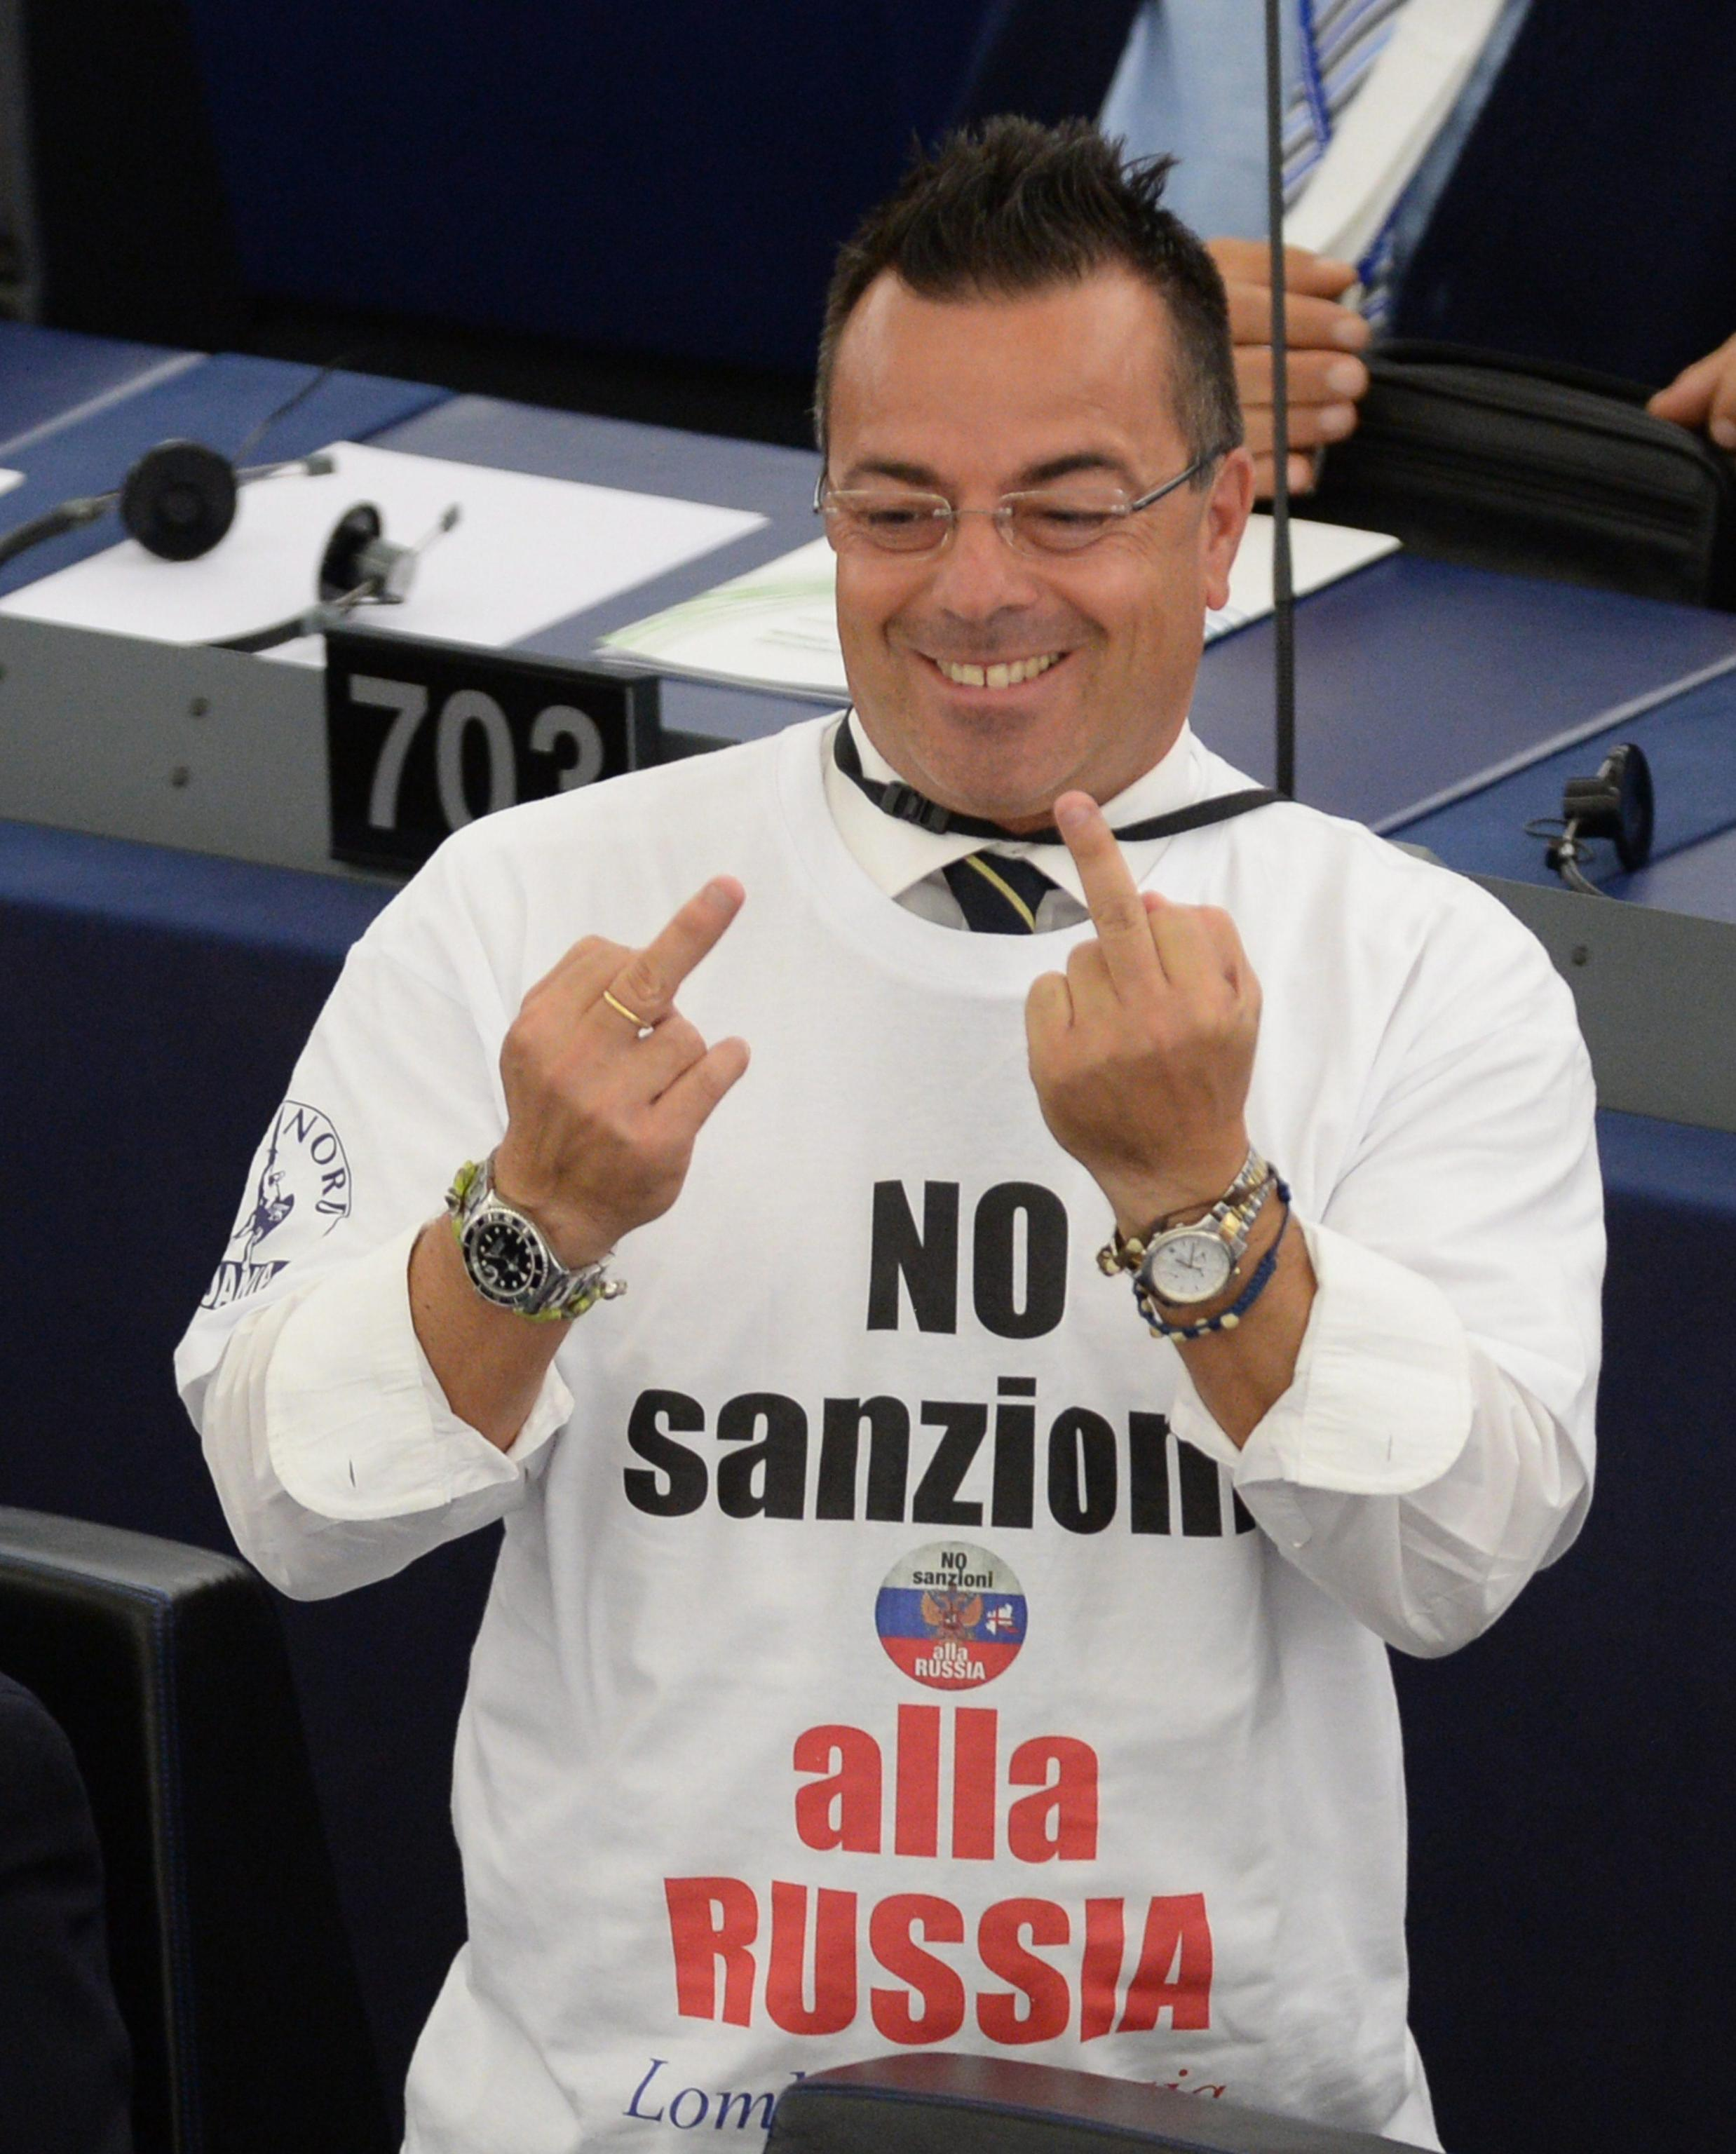 epa04402541 Italian member of the European Parliament (MEP) Gianluca Buonanno, of the Italian Lega Nord, wears a protest t-shirt with the slogan 'No Sanzioni alla Russia' (No Sanctions on Russia) during the plenary session at the European Parliament in Strasbourg, France, 16 September 2014. The parliaments of Ukraine and the European Union were set 16 September to ratify a landmark political and free trade deal, but some lawmakers expressed displeasure over a delay in the agreement. The political and trade deal ratified by parliaments in Ukraine and the European Union were the first step towards membership in the bloc, Ukrainian President Petro Poroshenko said. EPA/PATRICK SEEGER